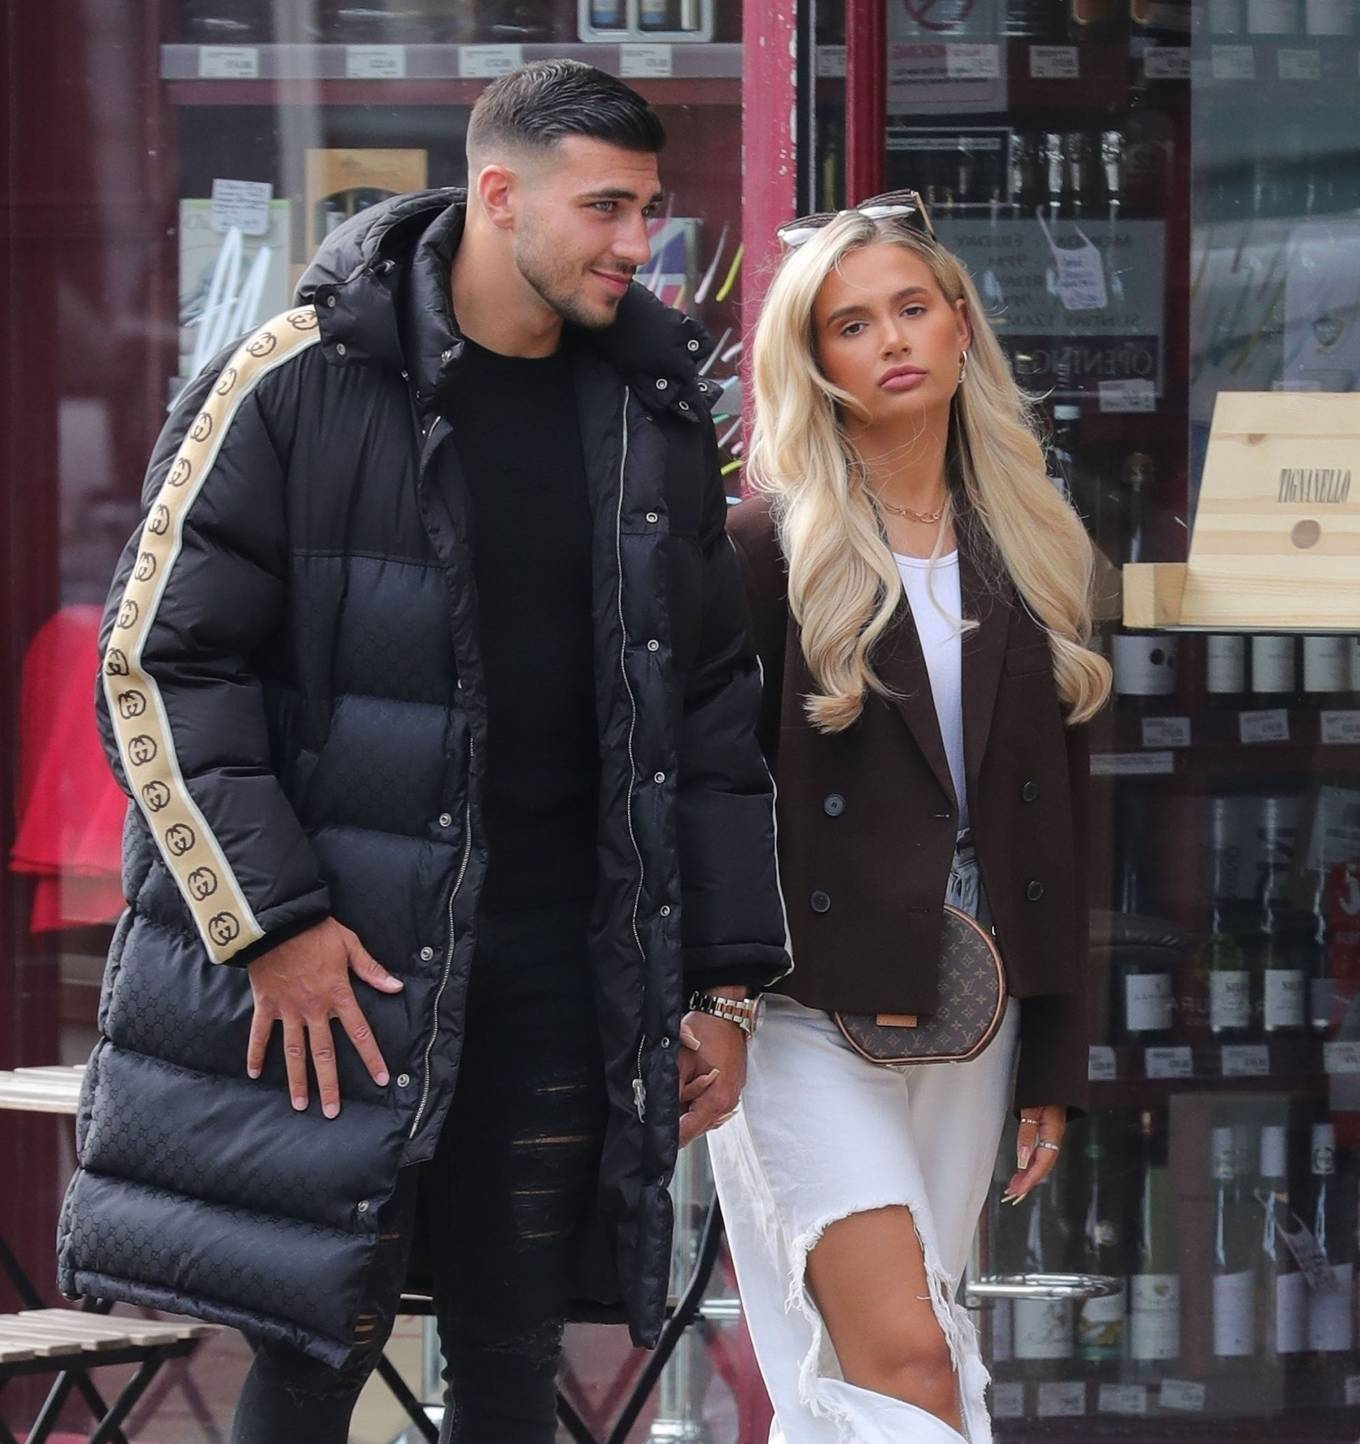 Molly-Mae Hague 2020 : Molly-Mae Hague and Tommy Fury – Seen while out in Cheshire -22